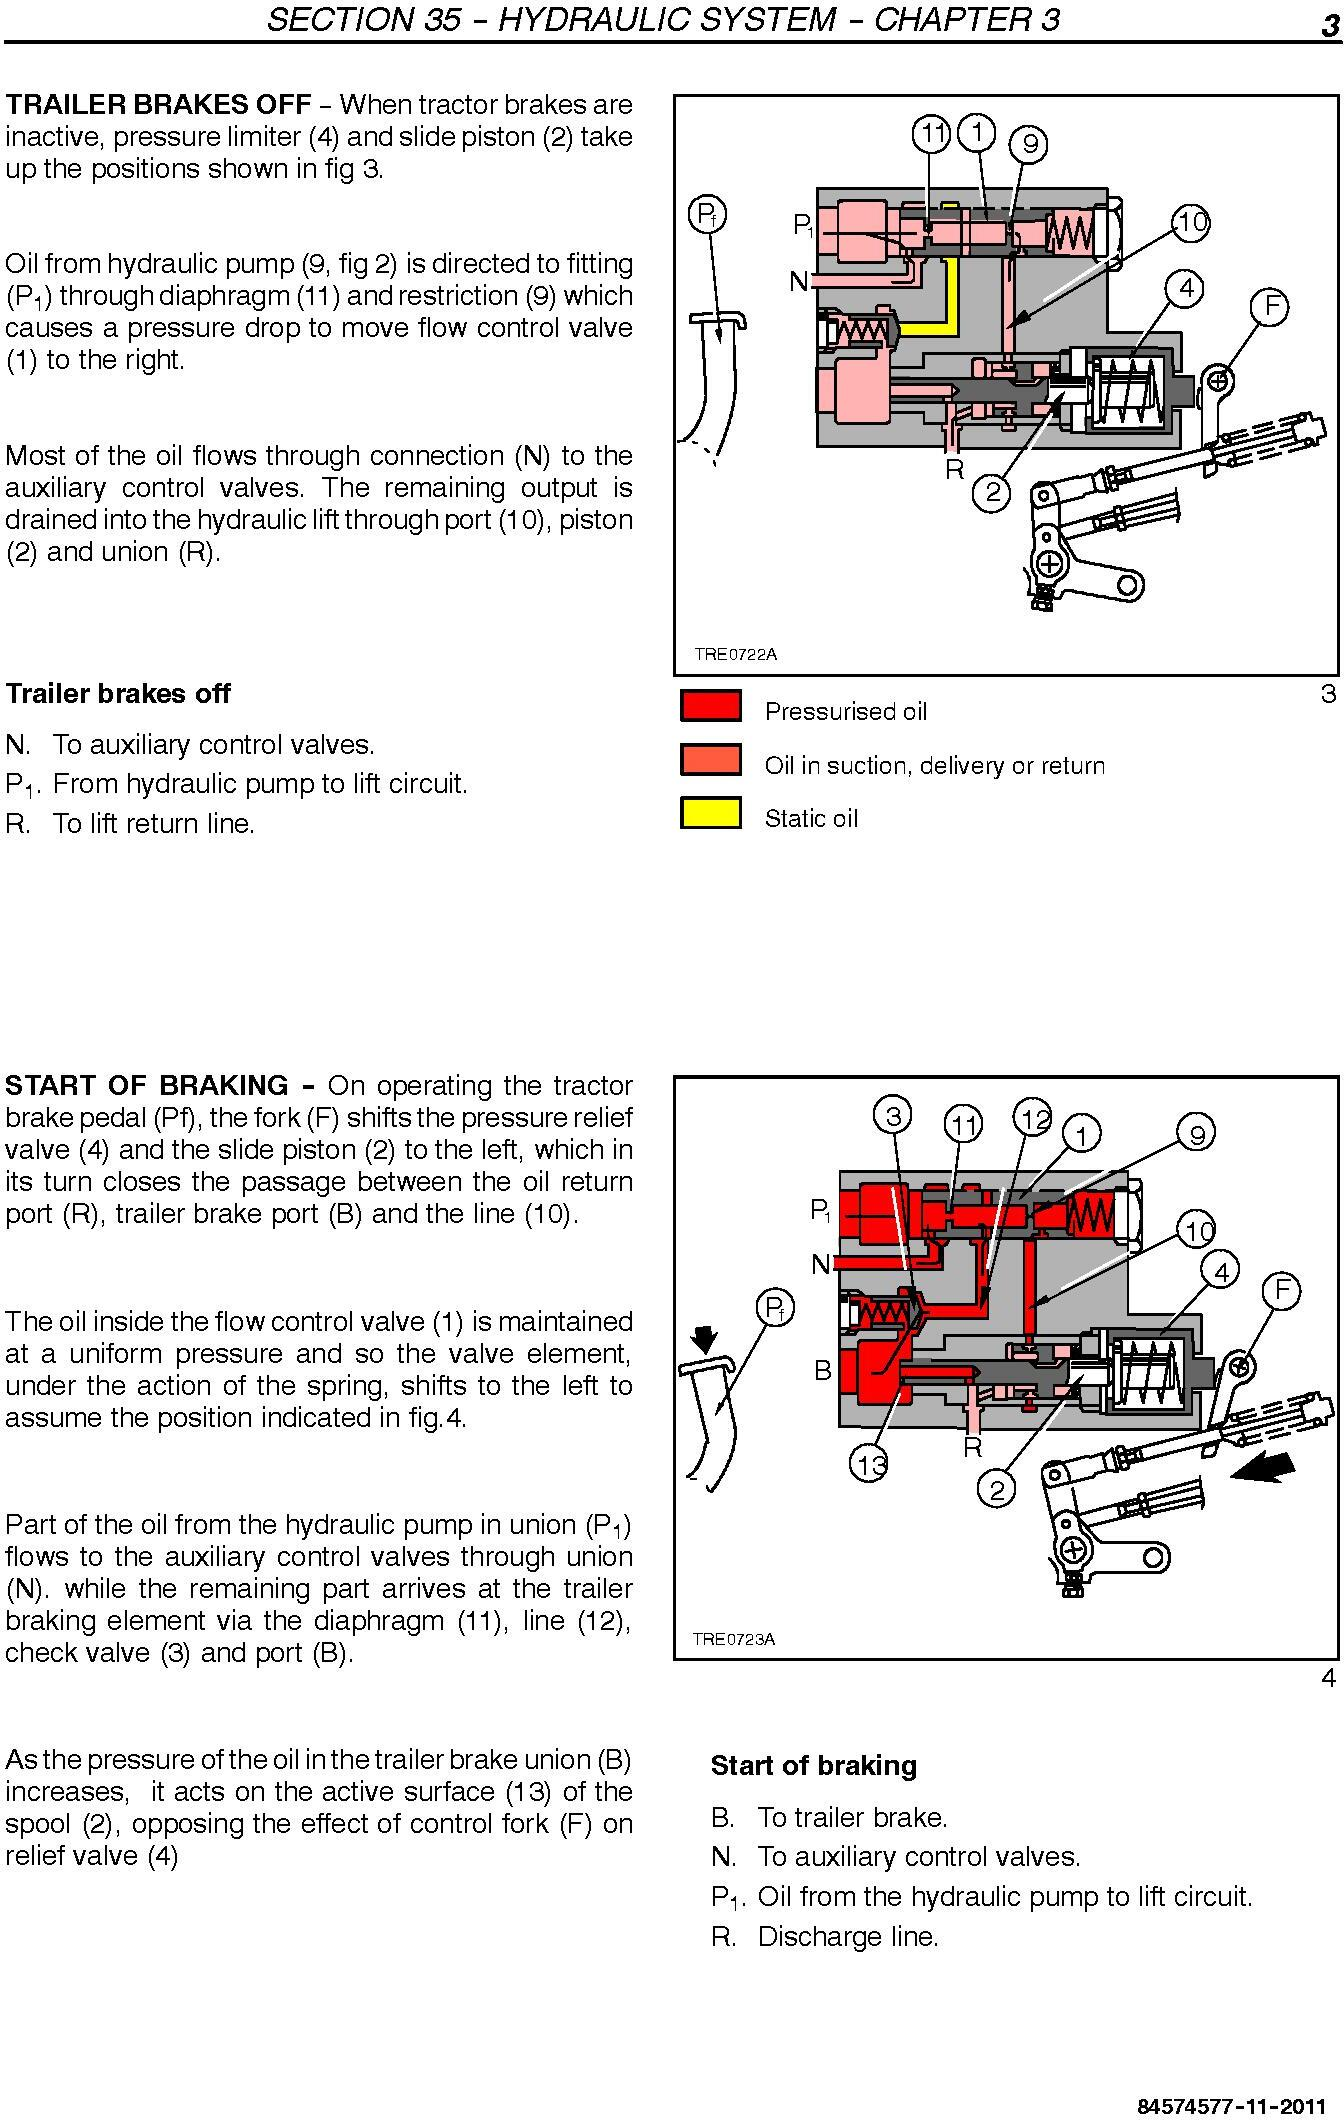 New Holland TD4040F Tractor Service Manual - 3